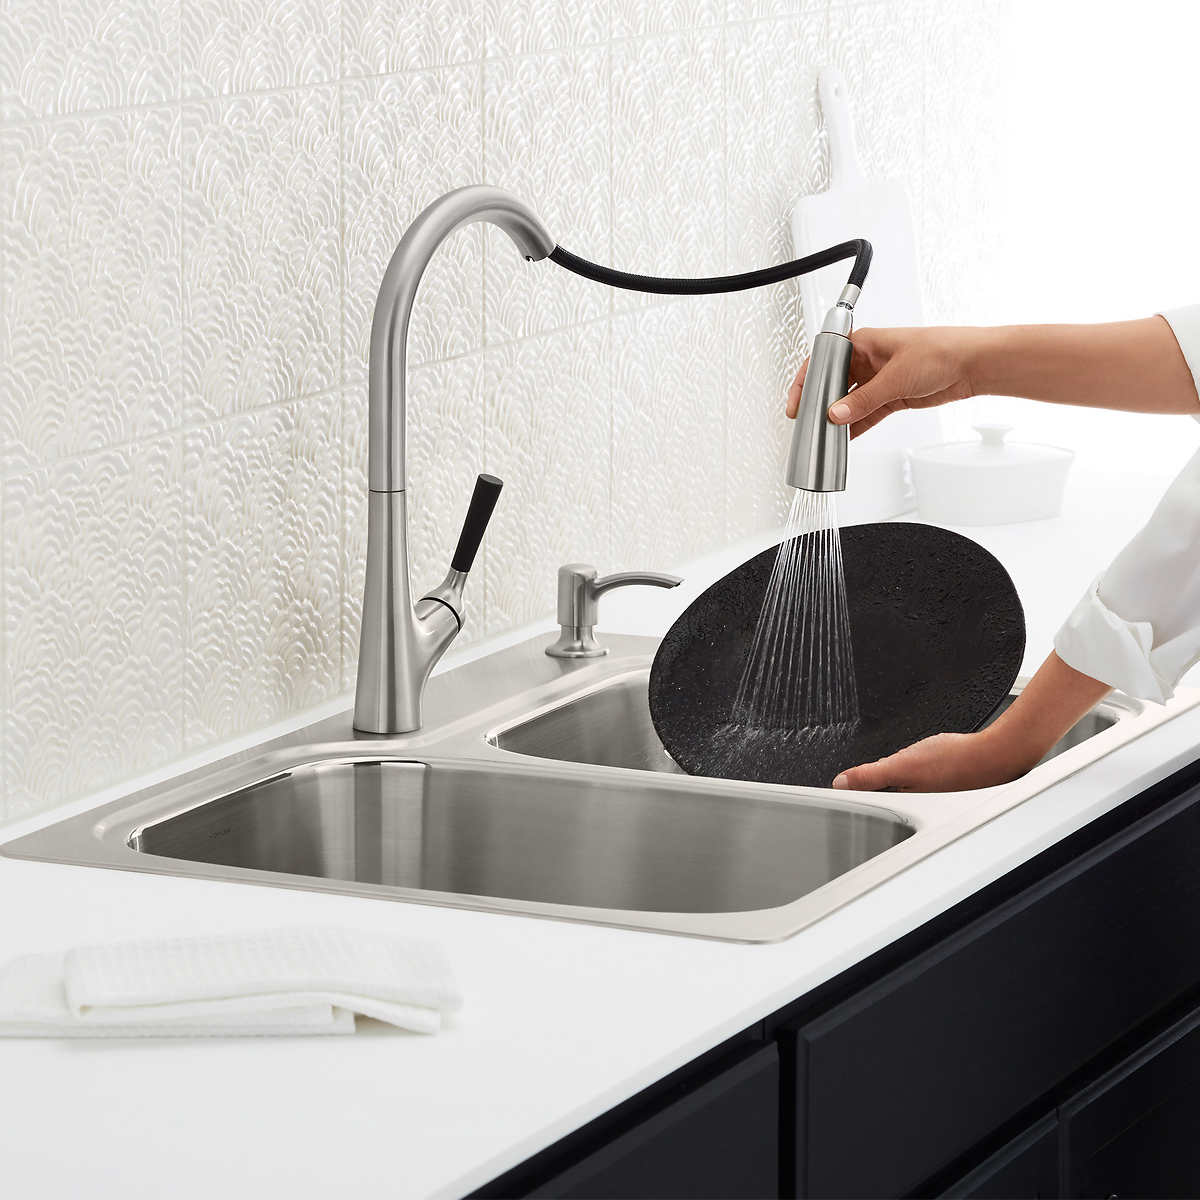 Kohler Stainless Steel Sink and Faucet Package product costco kitchen faucet Click to Zoom